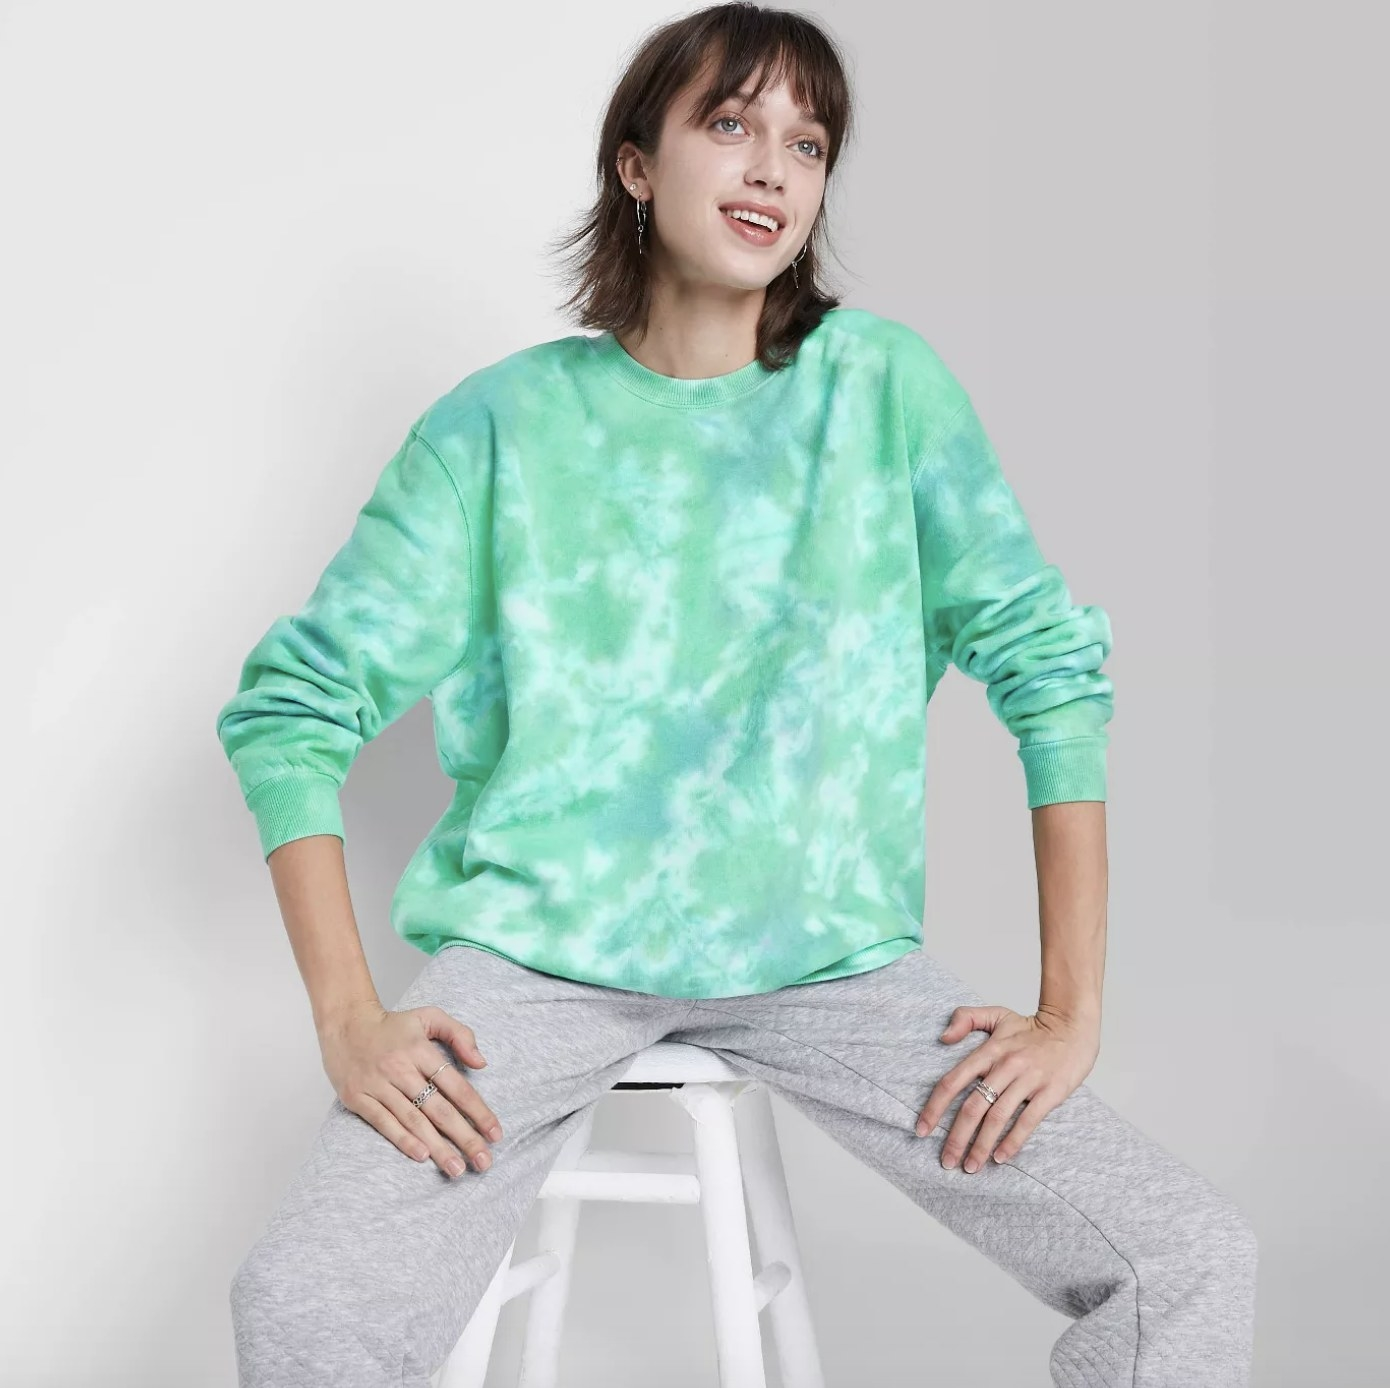 the sweatshirt in blue/green tie dye